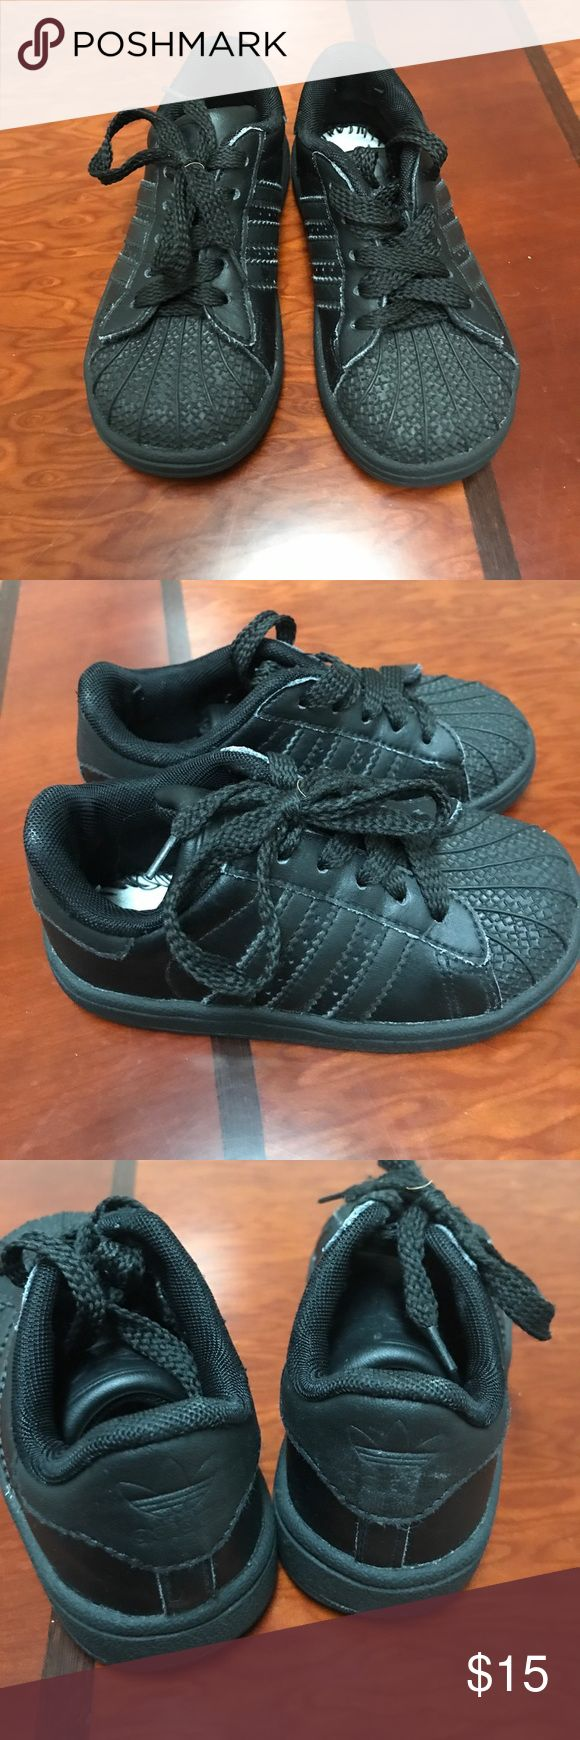 Adidas Black Toddler Sneakers 7 In good condition a pair of Adidas black toddler sneakers size 7. The insoles are missing but other wise shoes have lots of love to give. adidas Shoes Sneakers